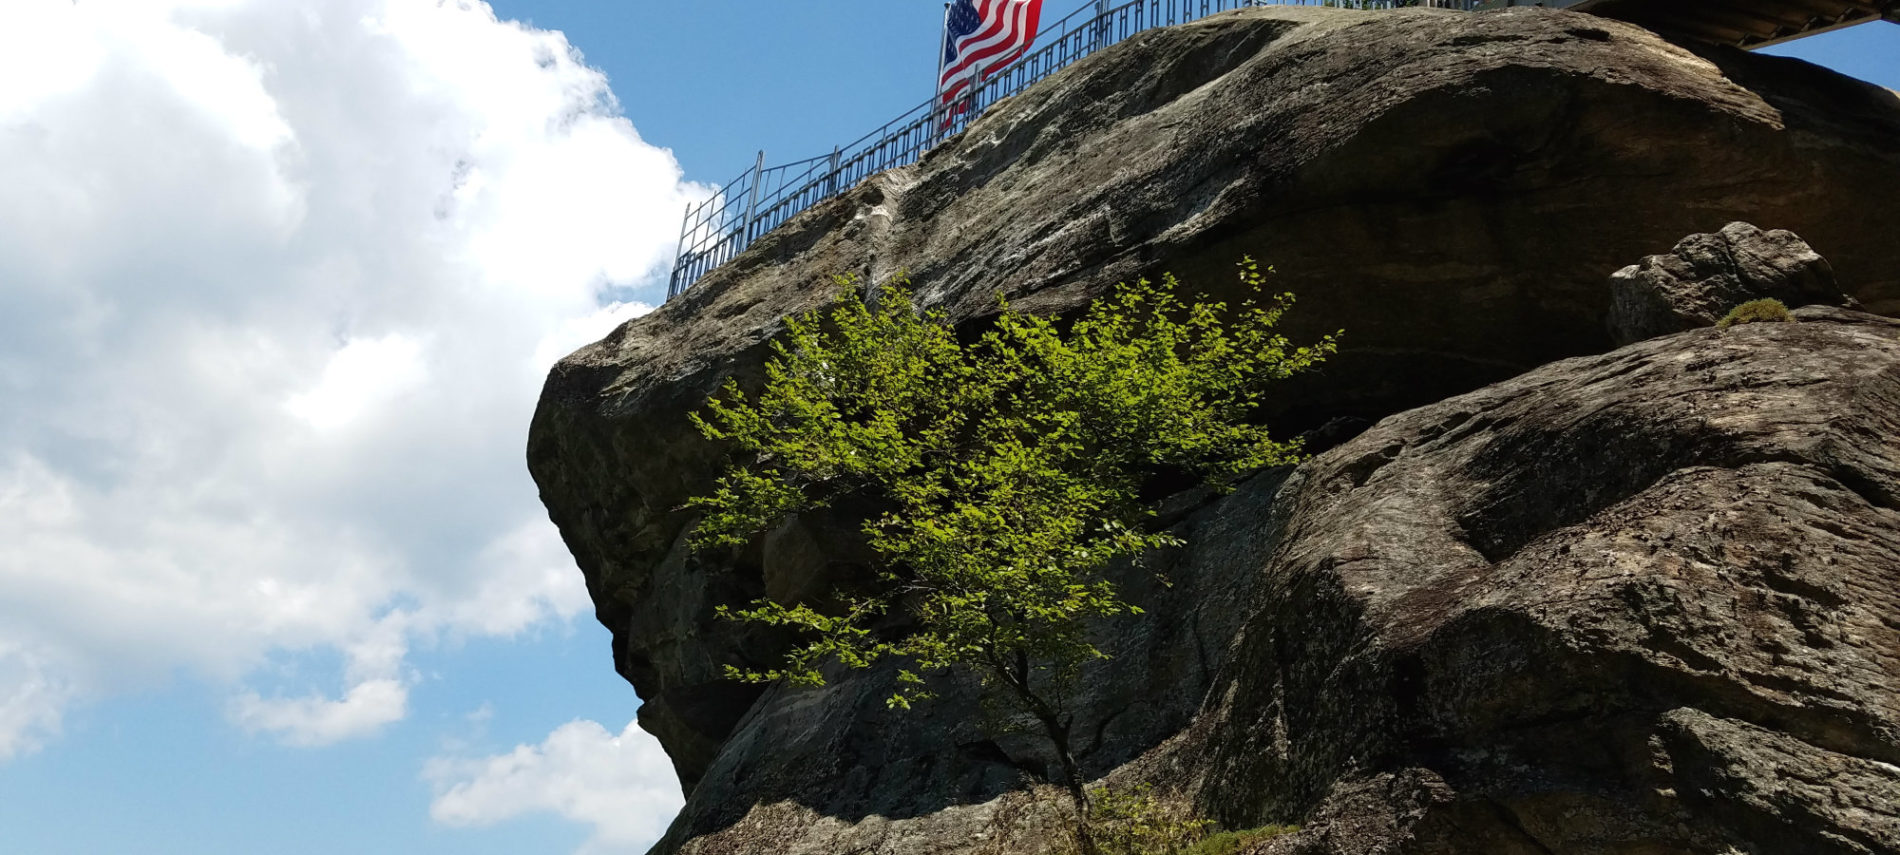 The American flag flies over a large granite monolith